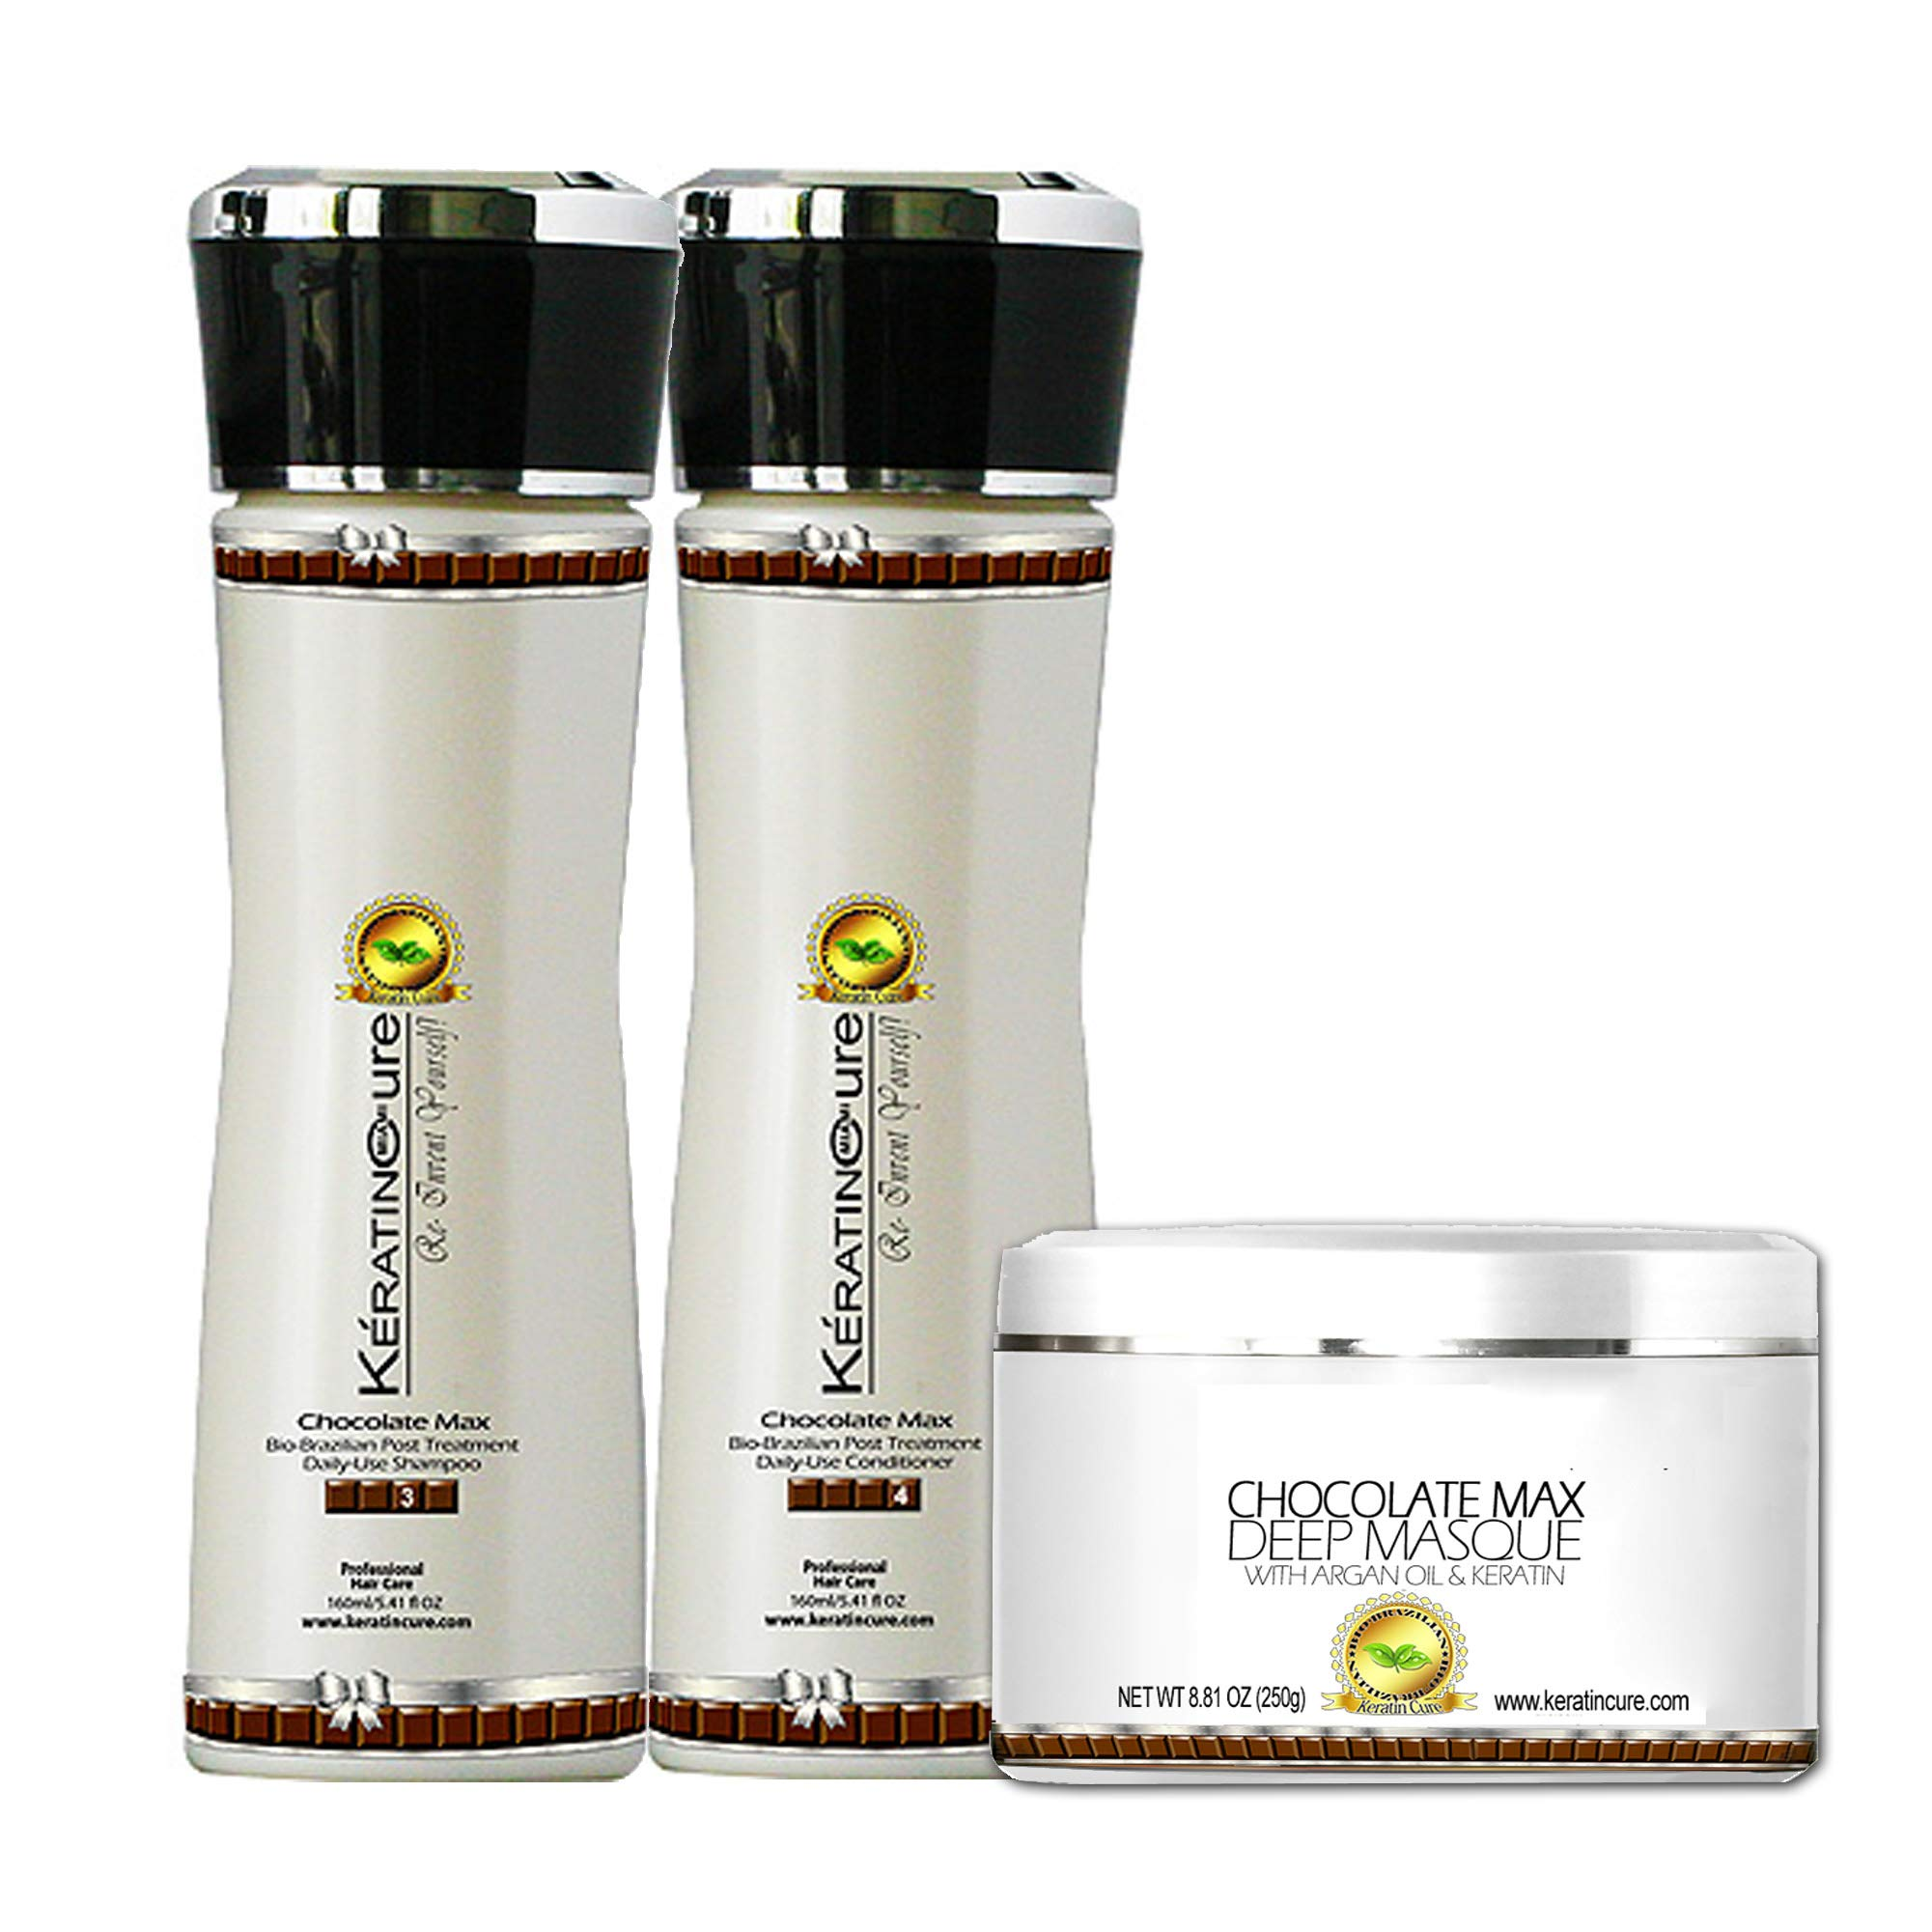 Keratin Cure SULFATE FREE- Chocolate Brazilian Shampoo, Conditioner, Deep Masque with Aloe Daily Use Promote hair growth decrease hair loss (160ml/ 5 fl oz) by Keratin Cure